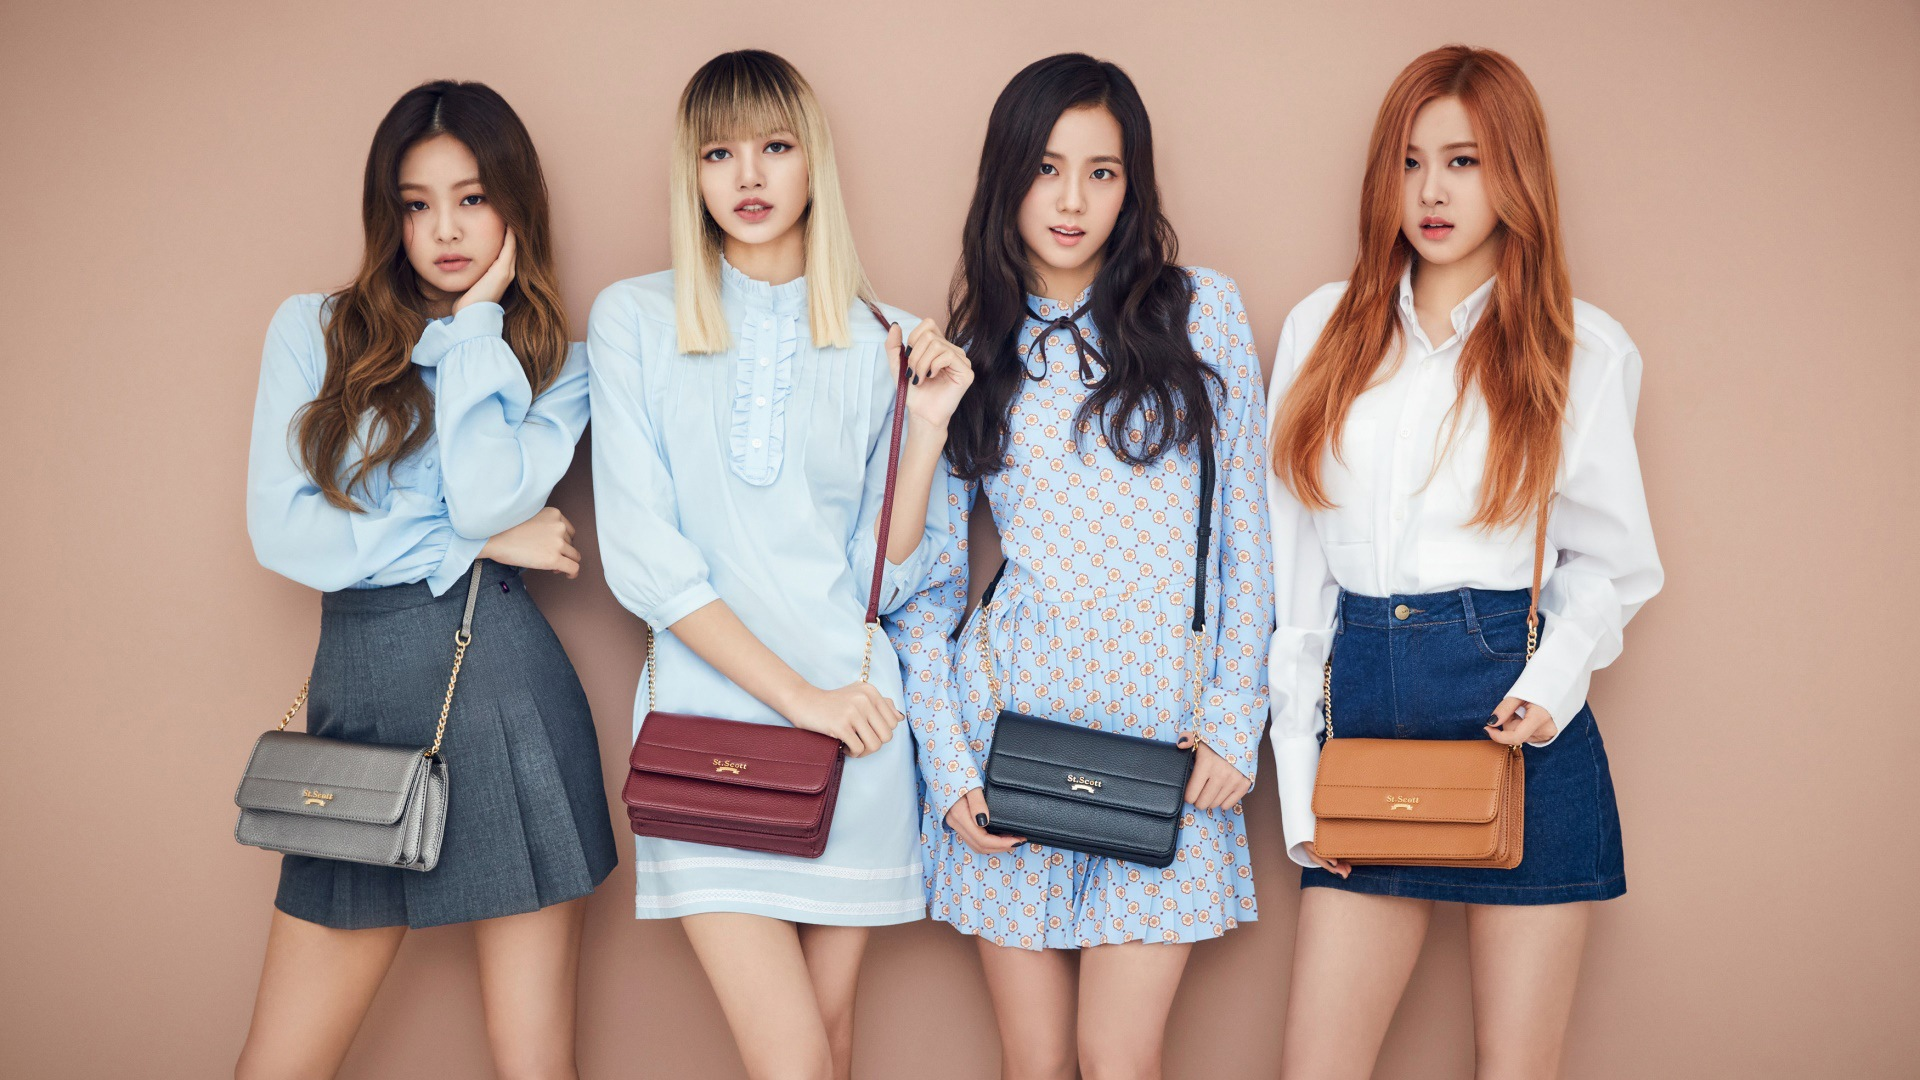 Black Pink images BLACKPINK HD wallpaper and background photos 1920x1080